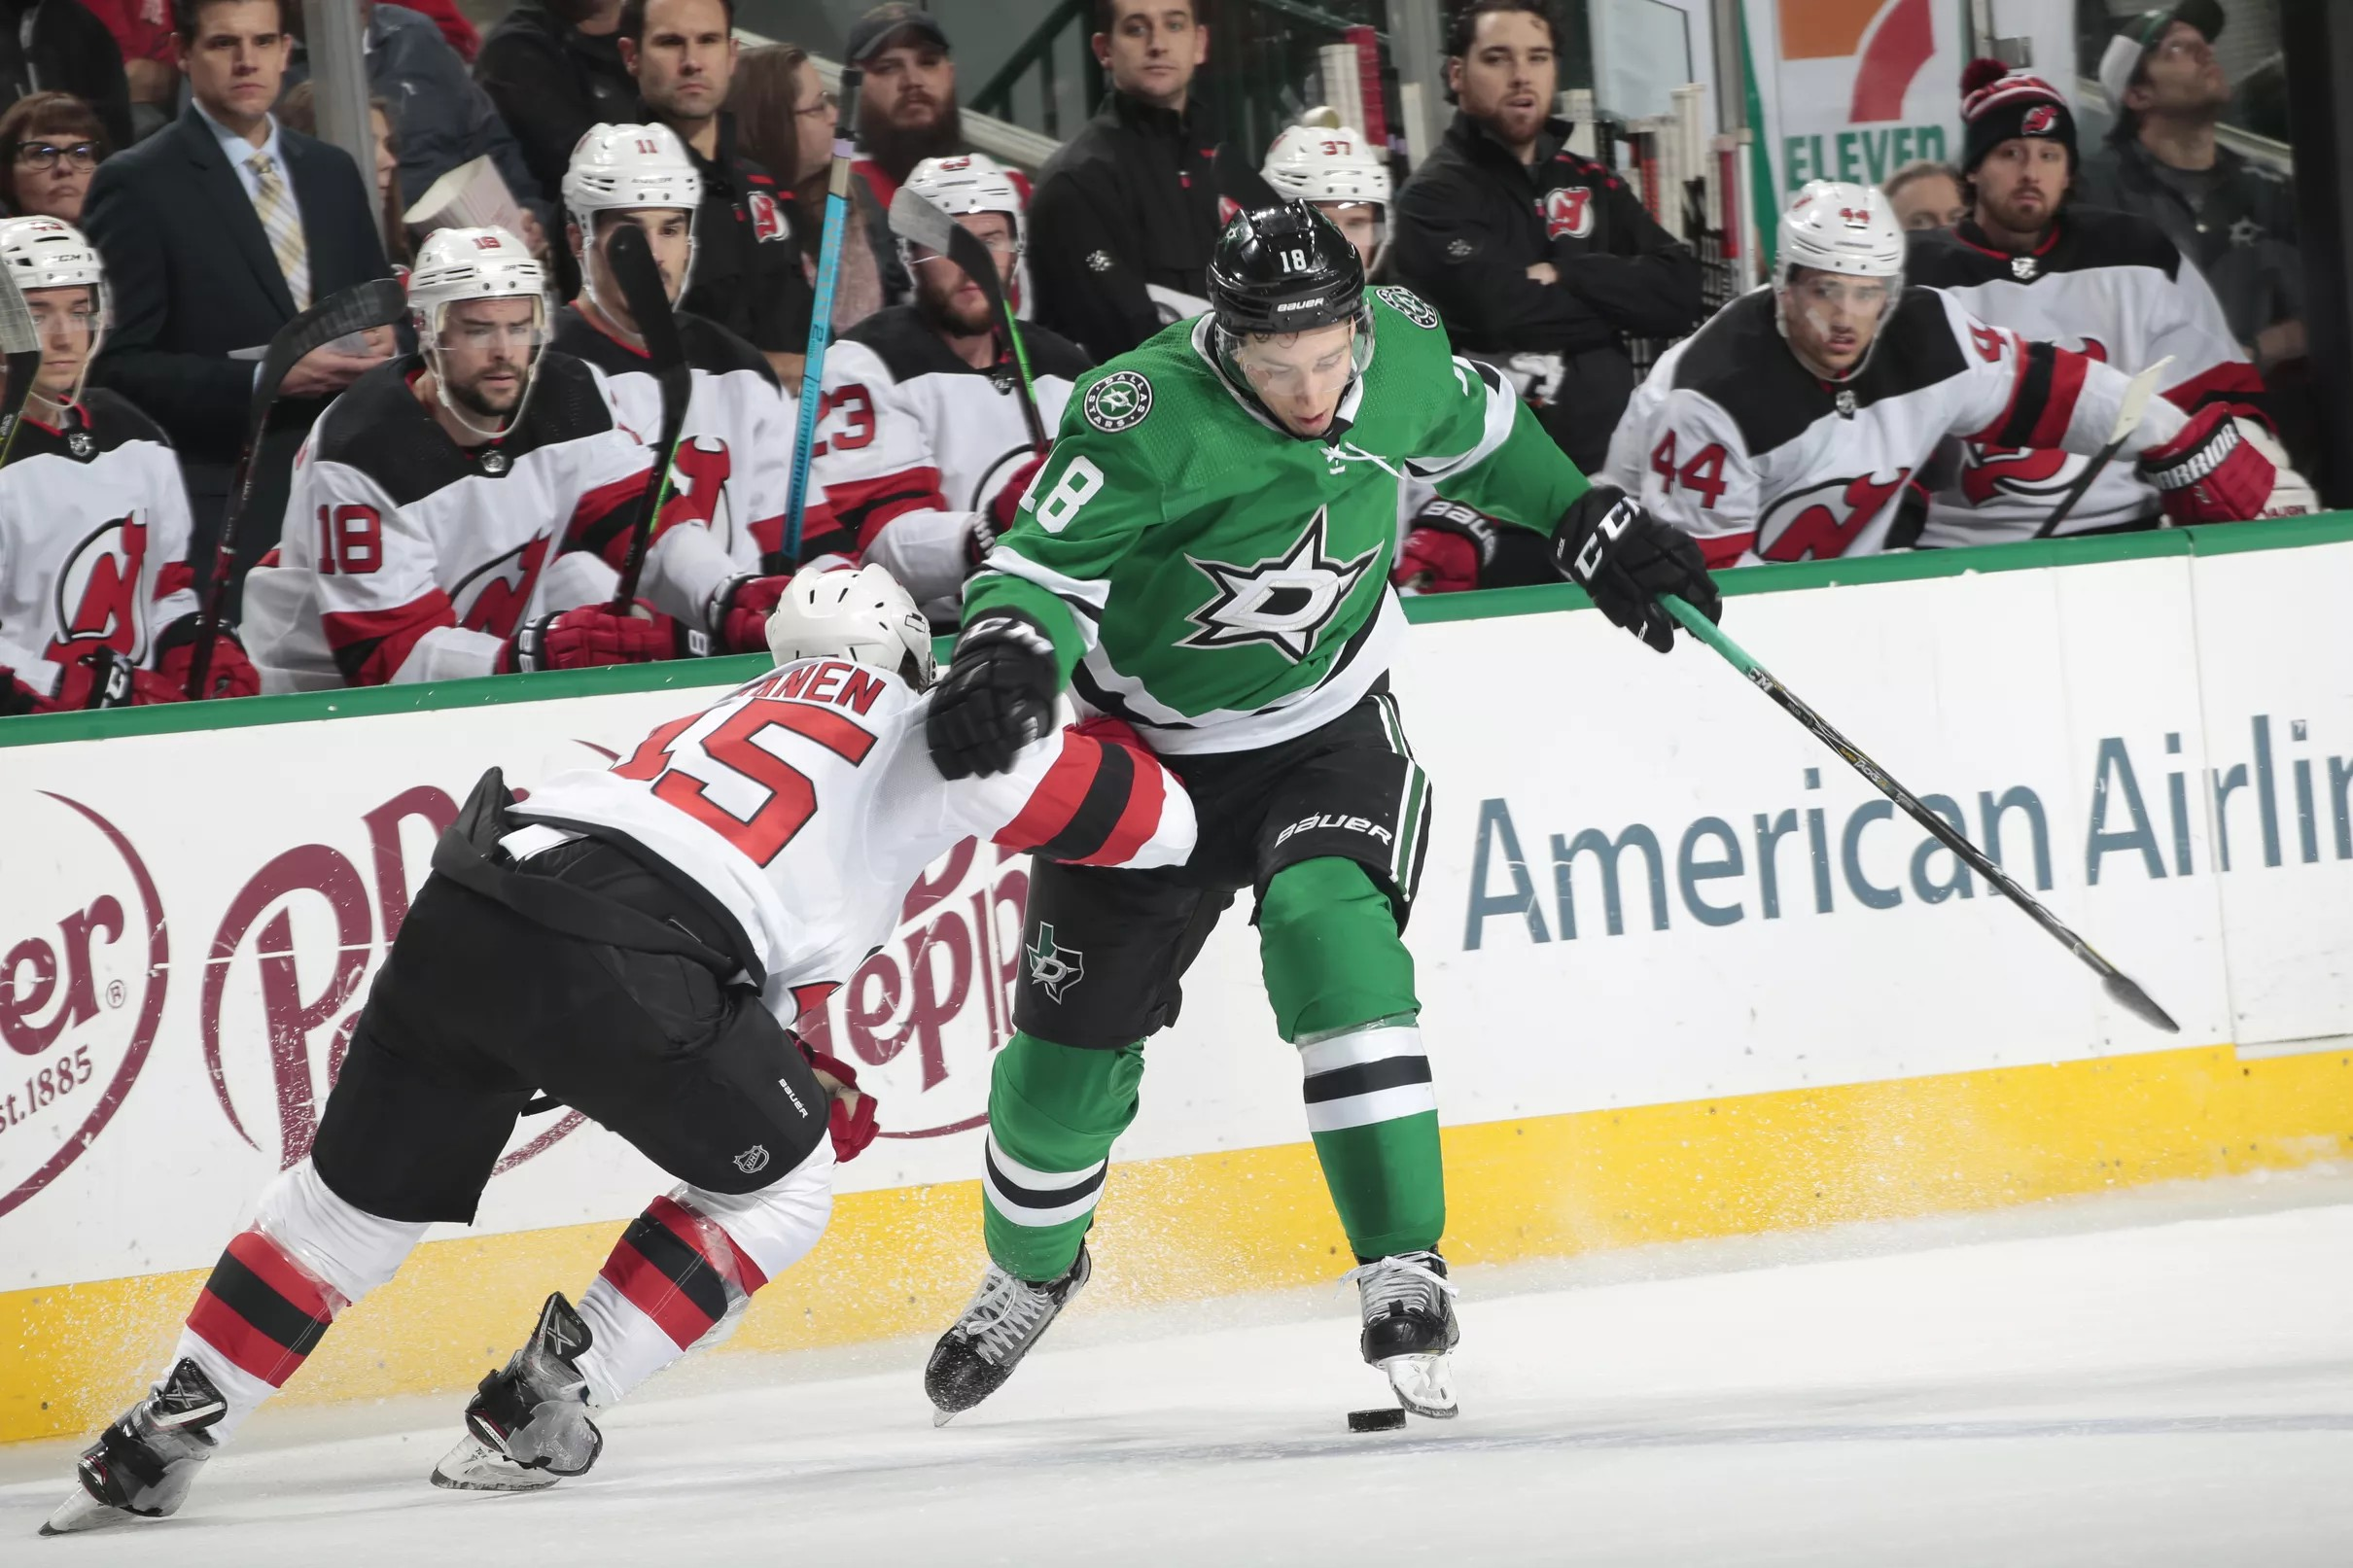 info for 5ee67 56f43 New Jersey Devils Broken Down by Dallas Stars in 4-5 Defeat